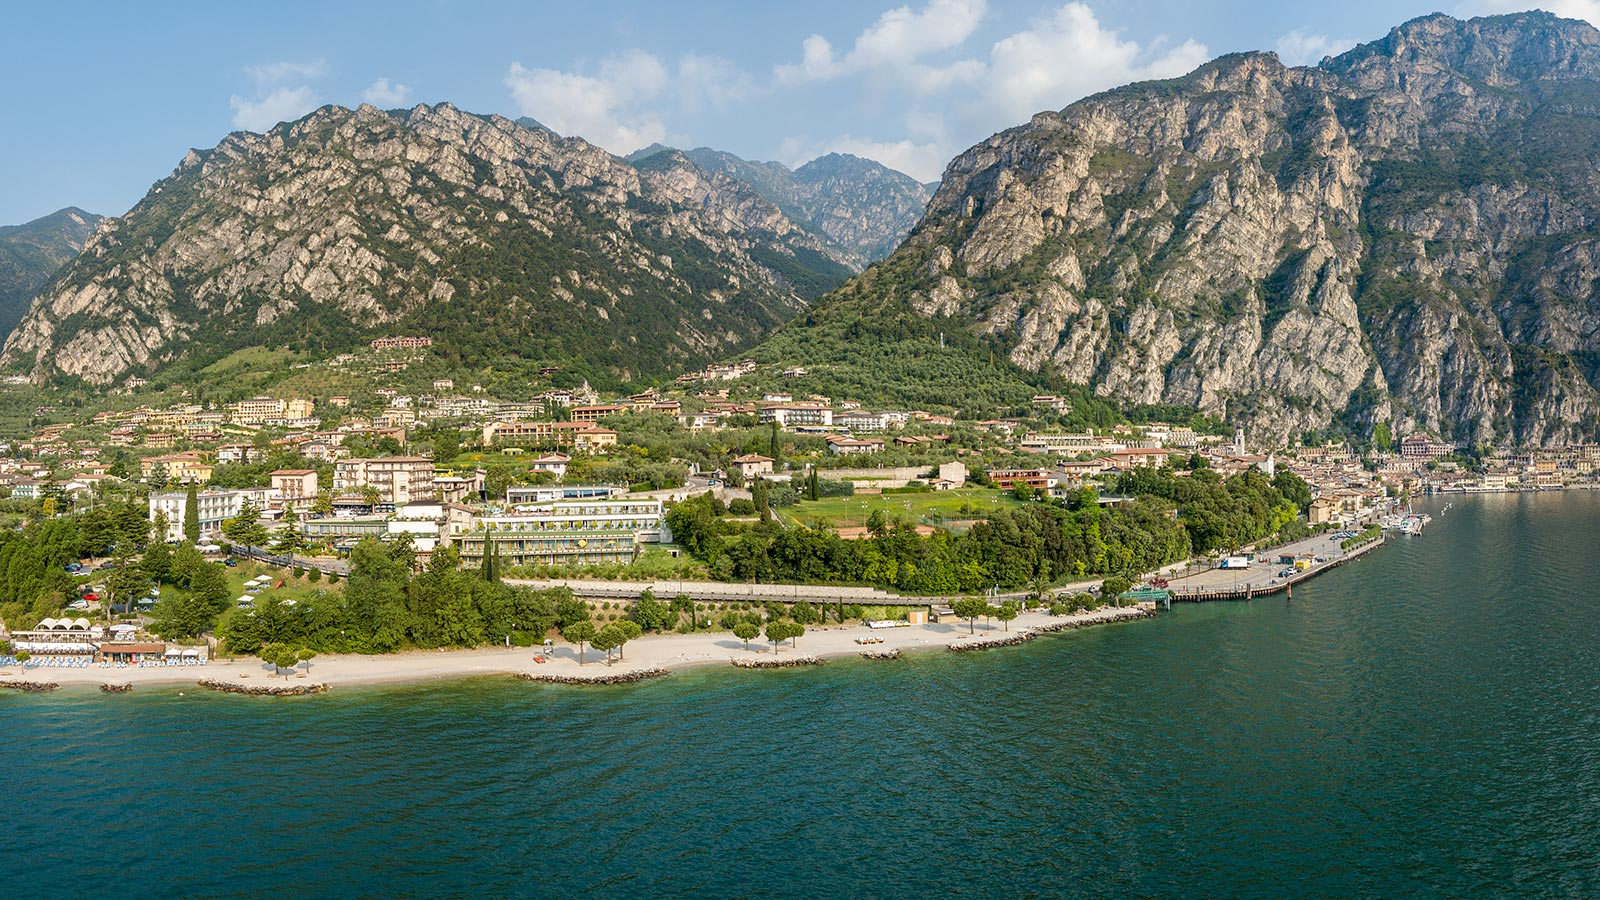 Panoramic view of Limone sul Garda with mountains and the lake's shore